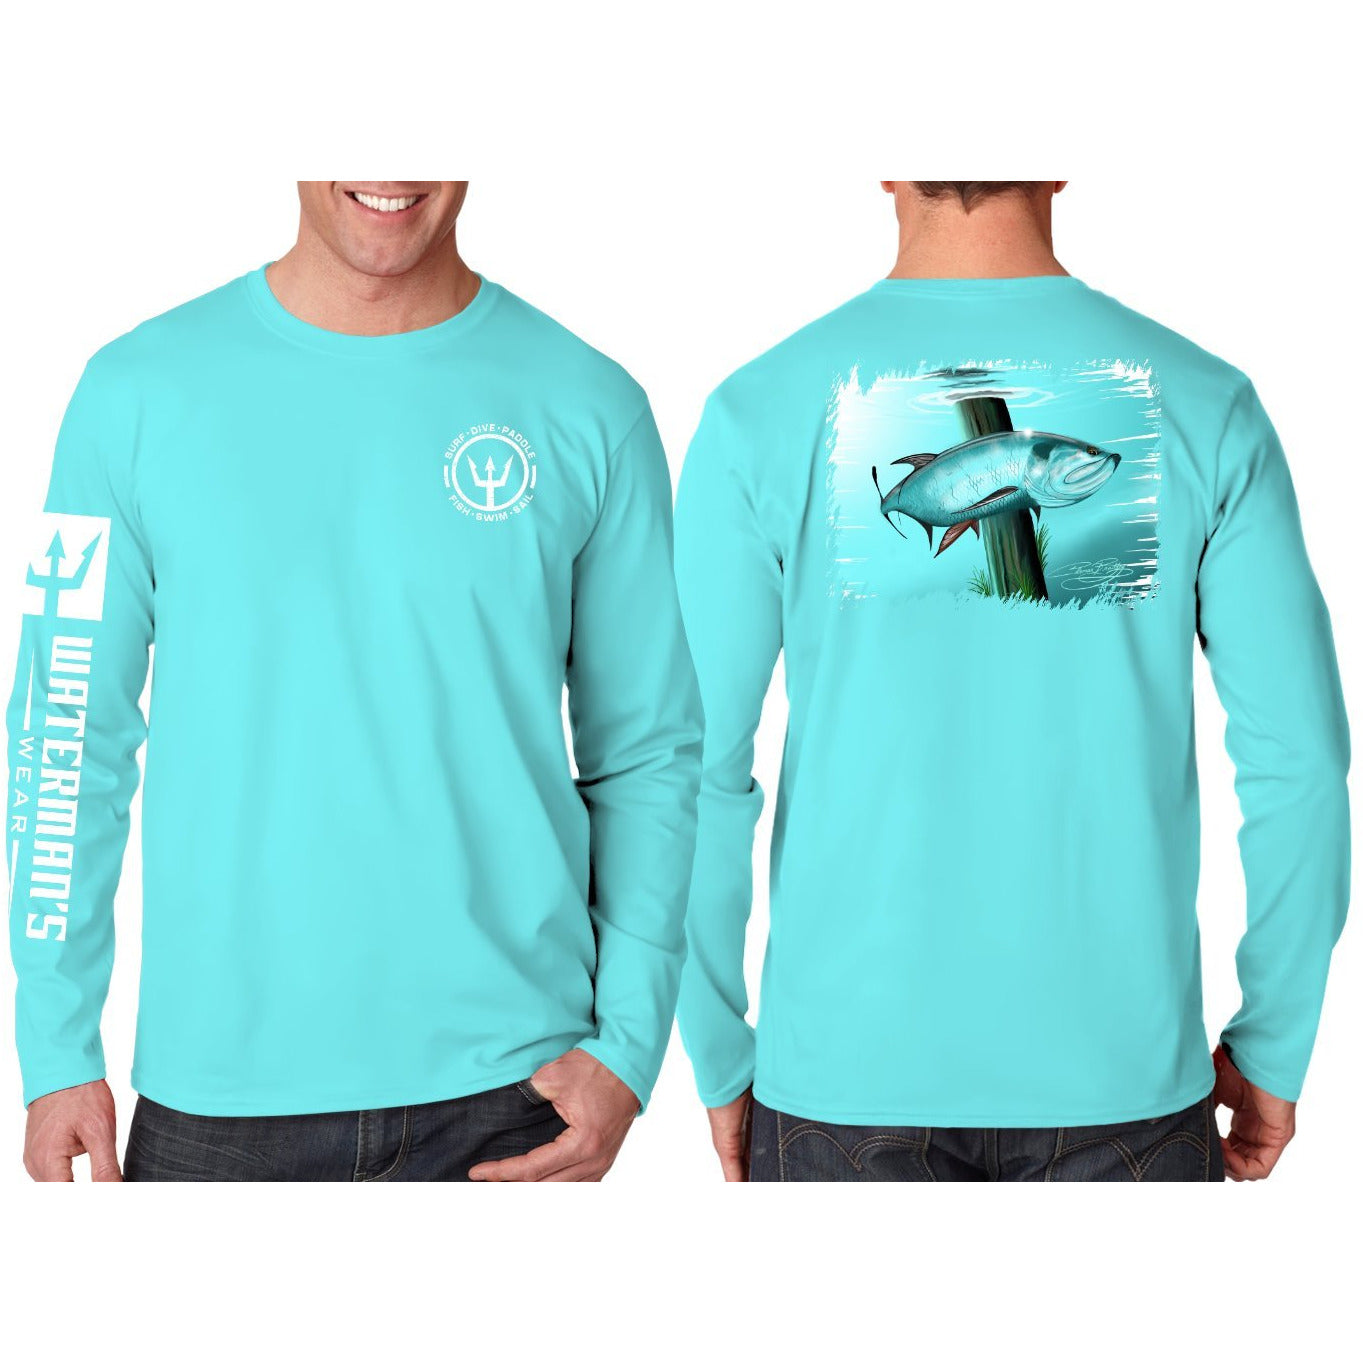 Waterman's Wear Custom Cruisin' Tarpon UPF50 Long Sleeve Fishing Shirt by Coleman Bradley - Teal